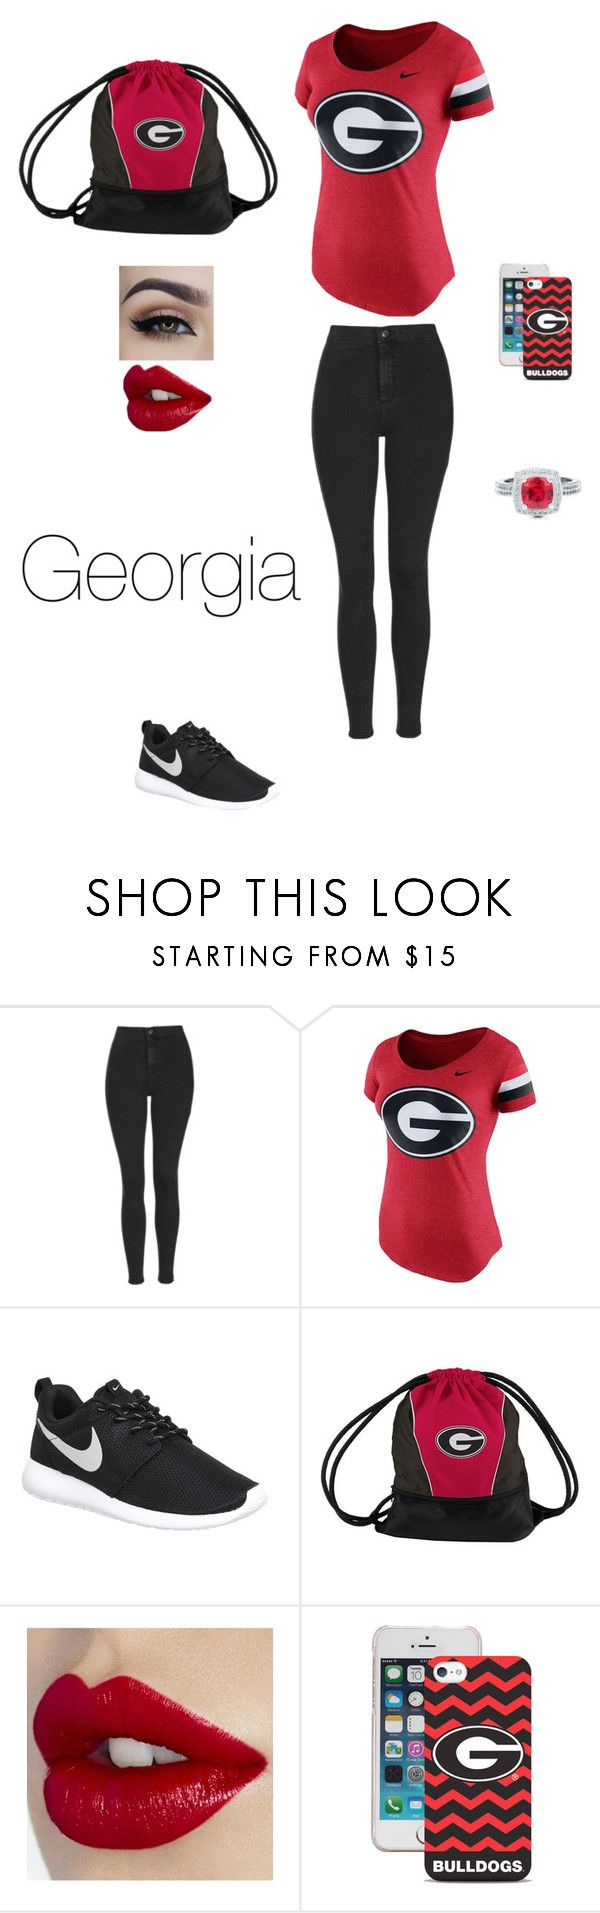 """""""georgia bulldogs"""" by ejjones123 ❤ liked on Polyvore featuring Topshop, NIKE, BERRICLE, women's clothing, women, female, woman, misses and juniors"""